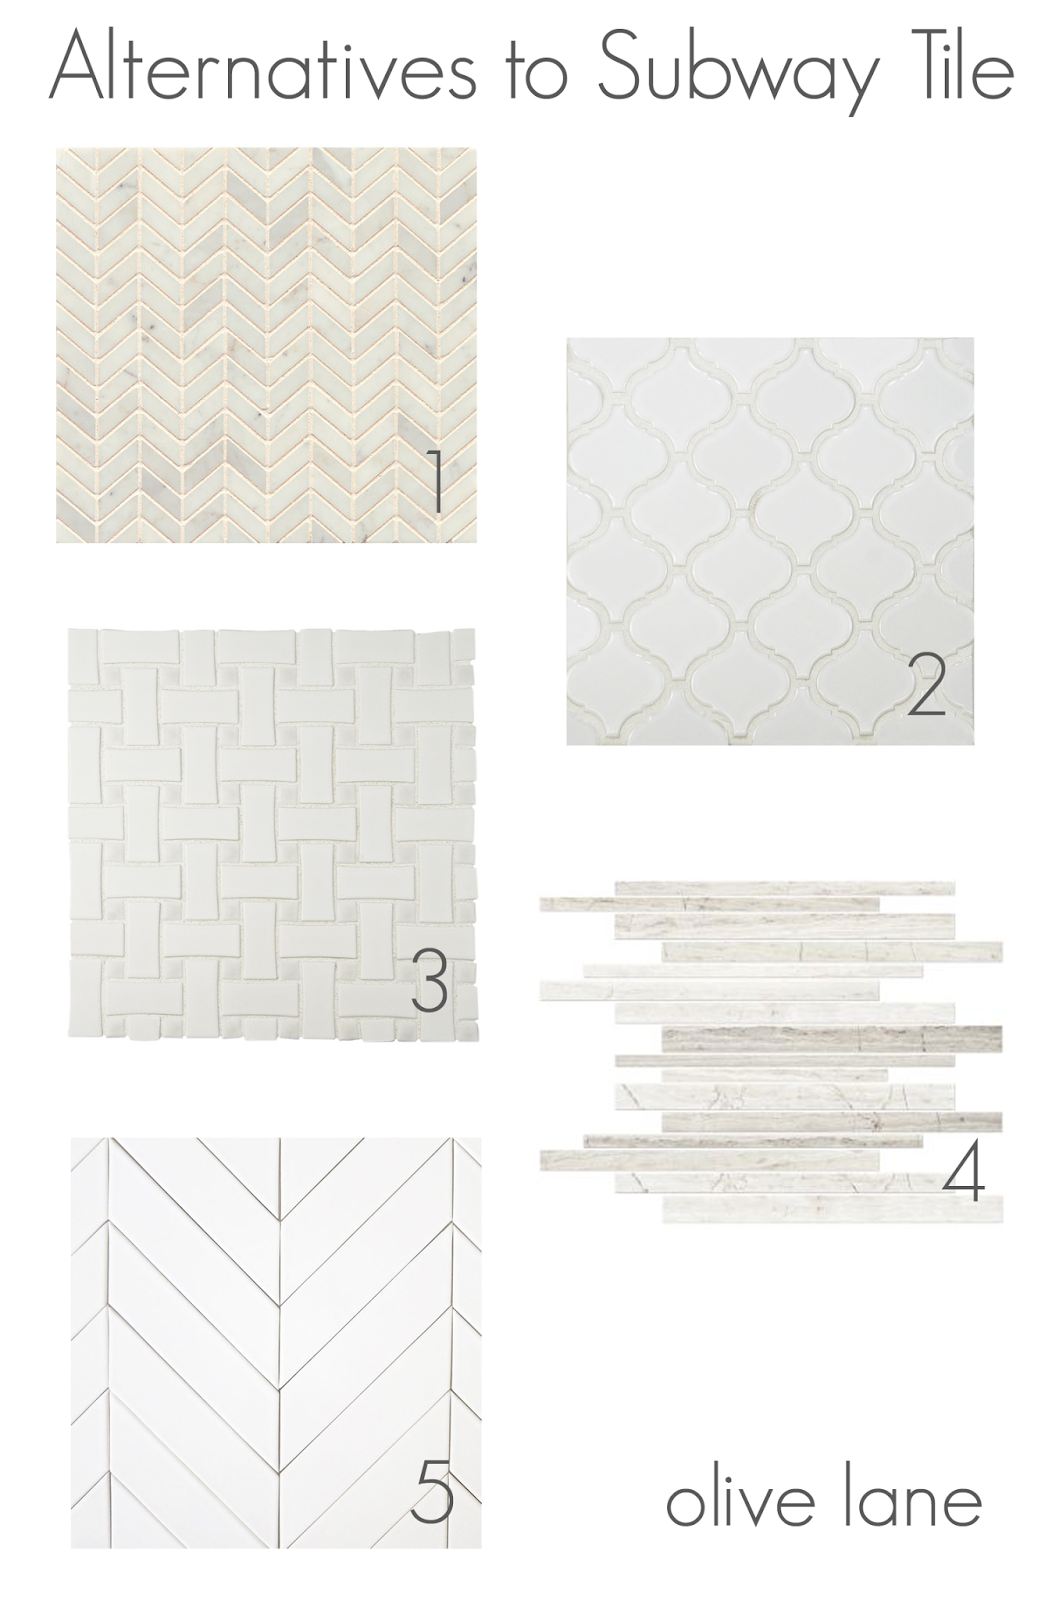 Alternative to Subway Tiles for White Kitchen Backsplash www.olivelaneinteriors.com